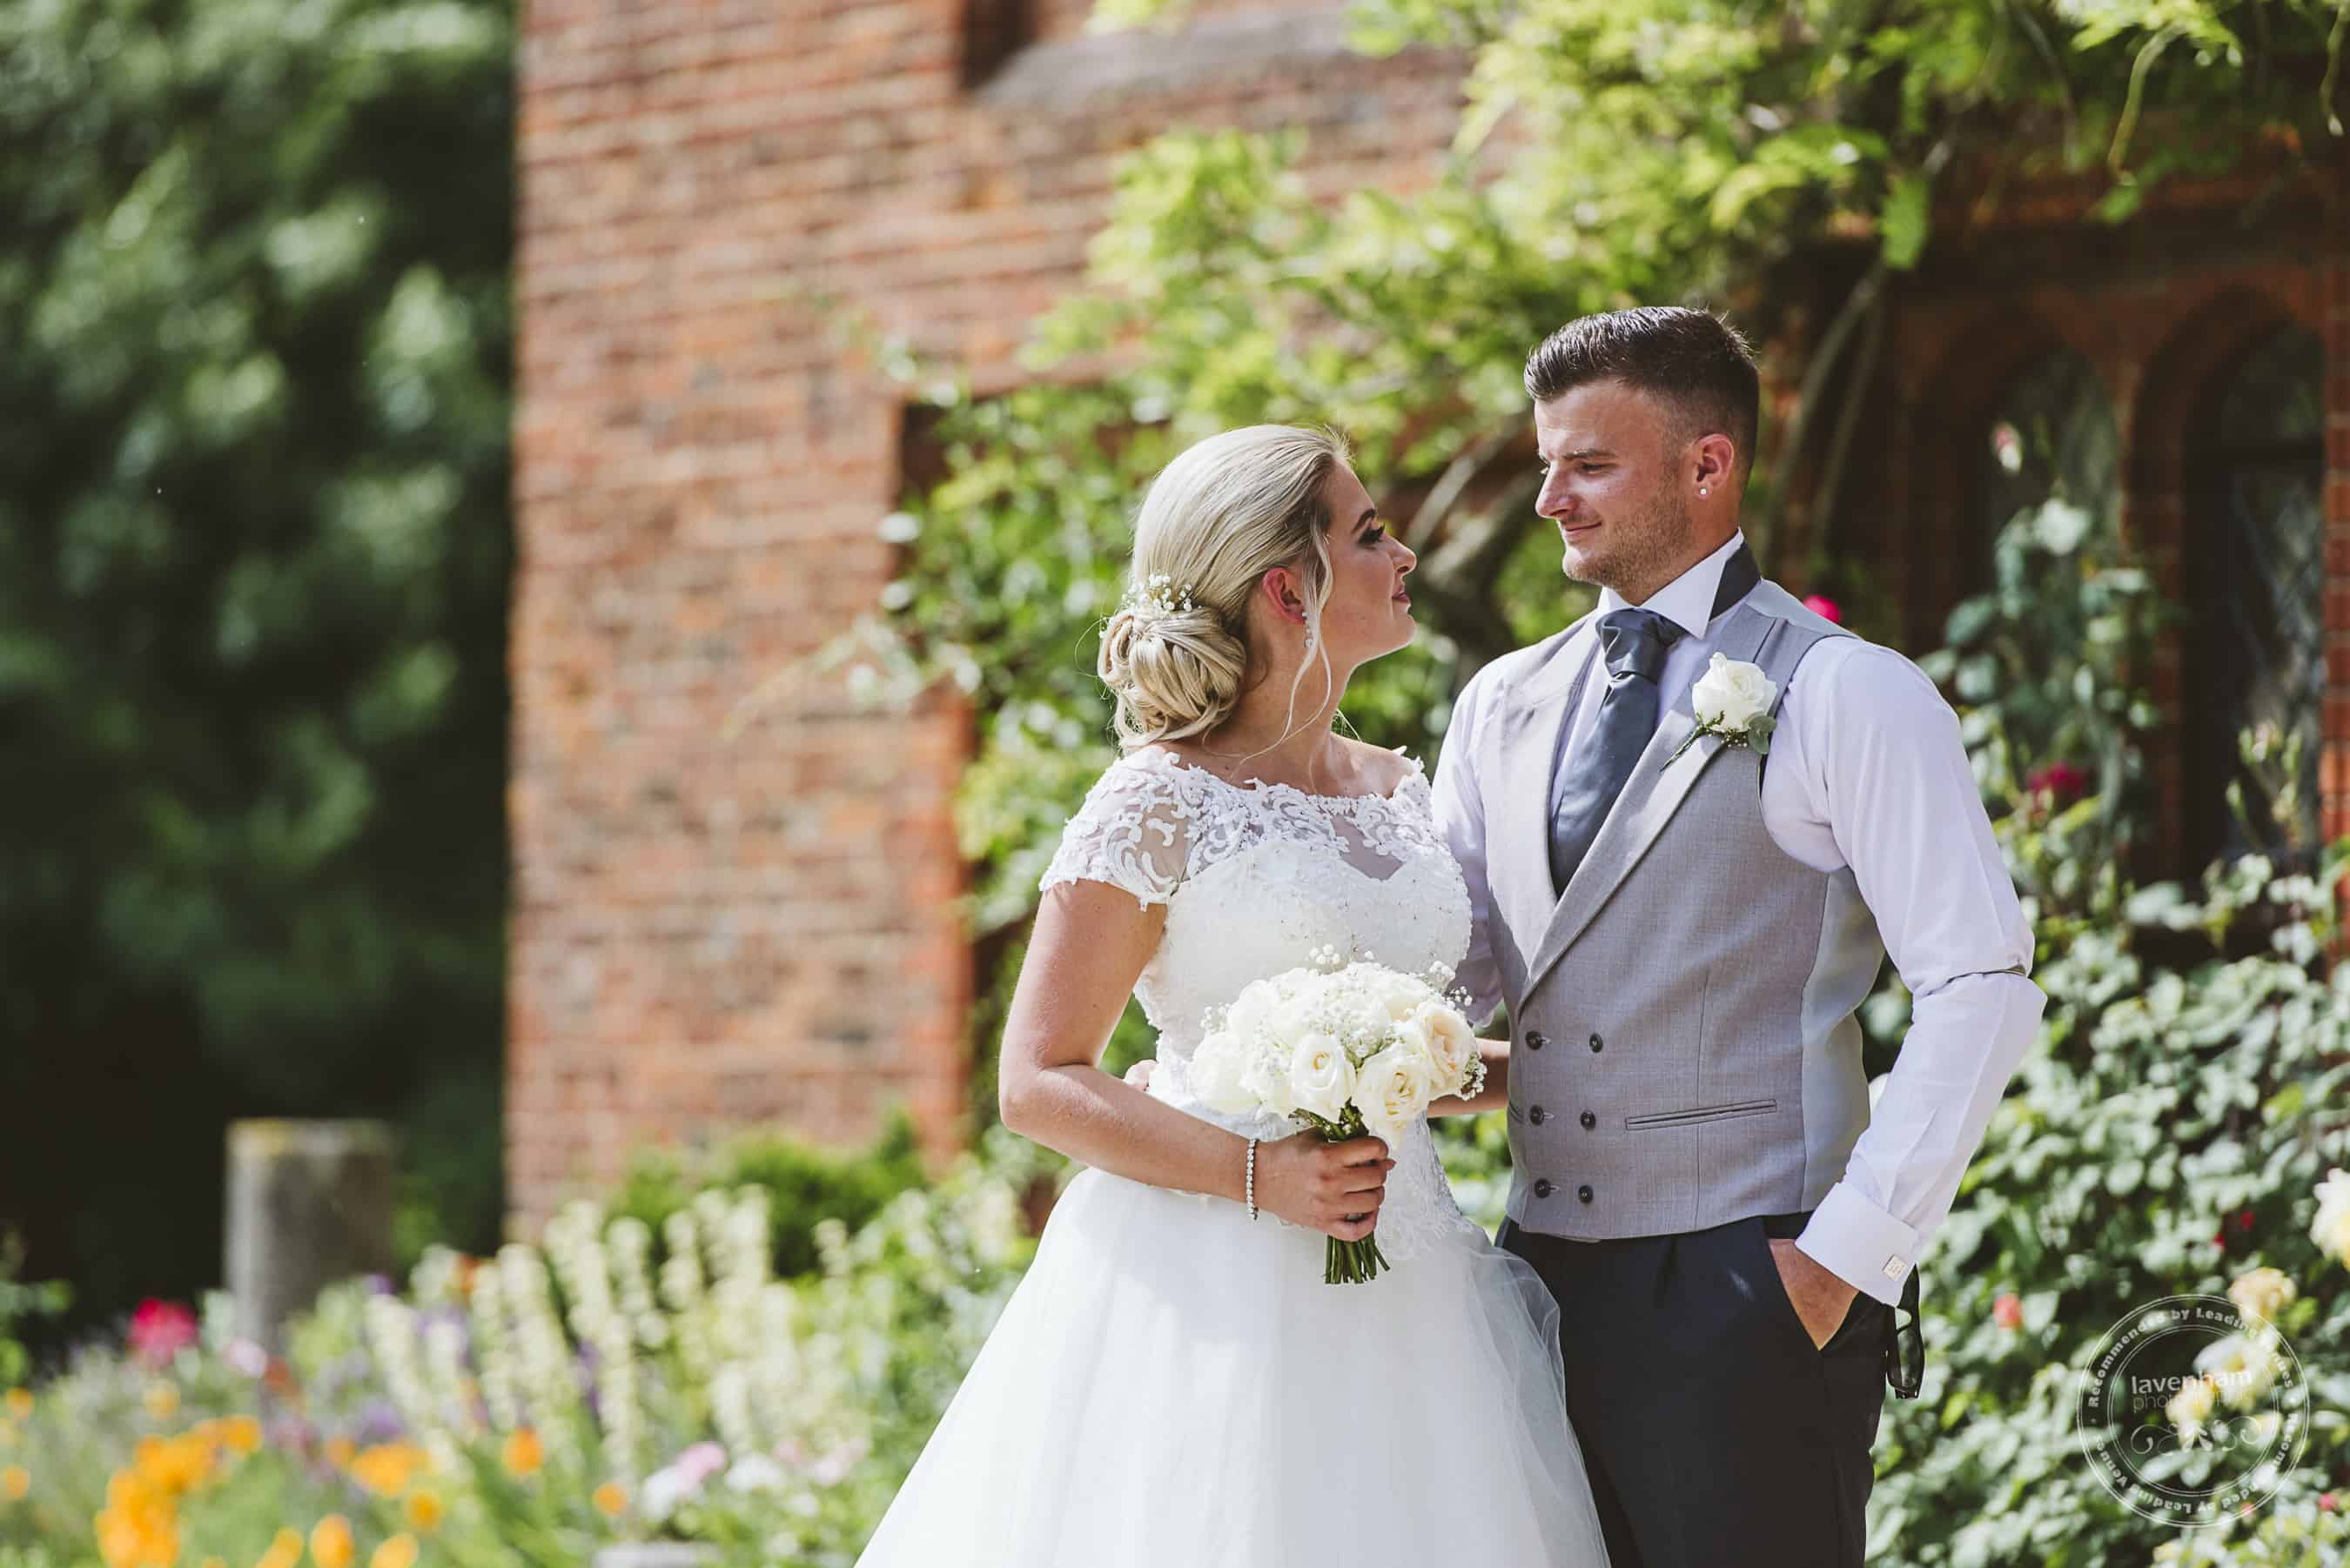 030618 Leez Priory Wedding Photography Lavenham Photographic 054